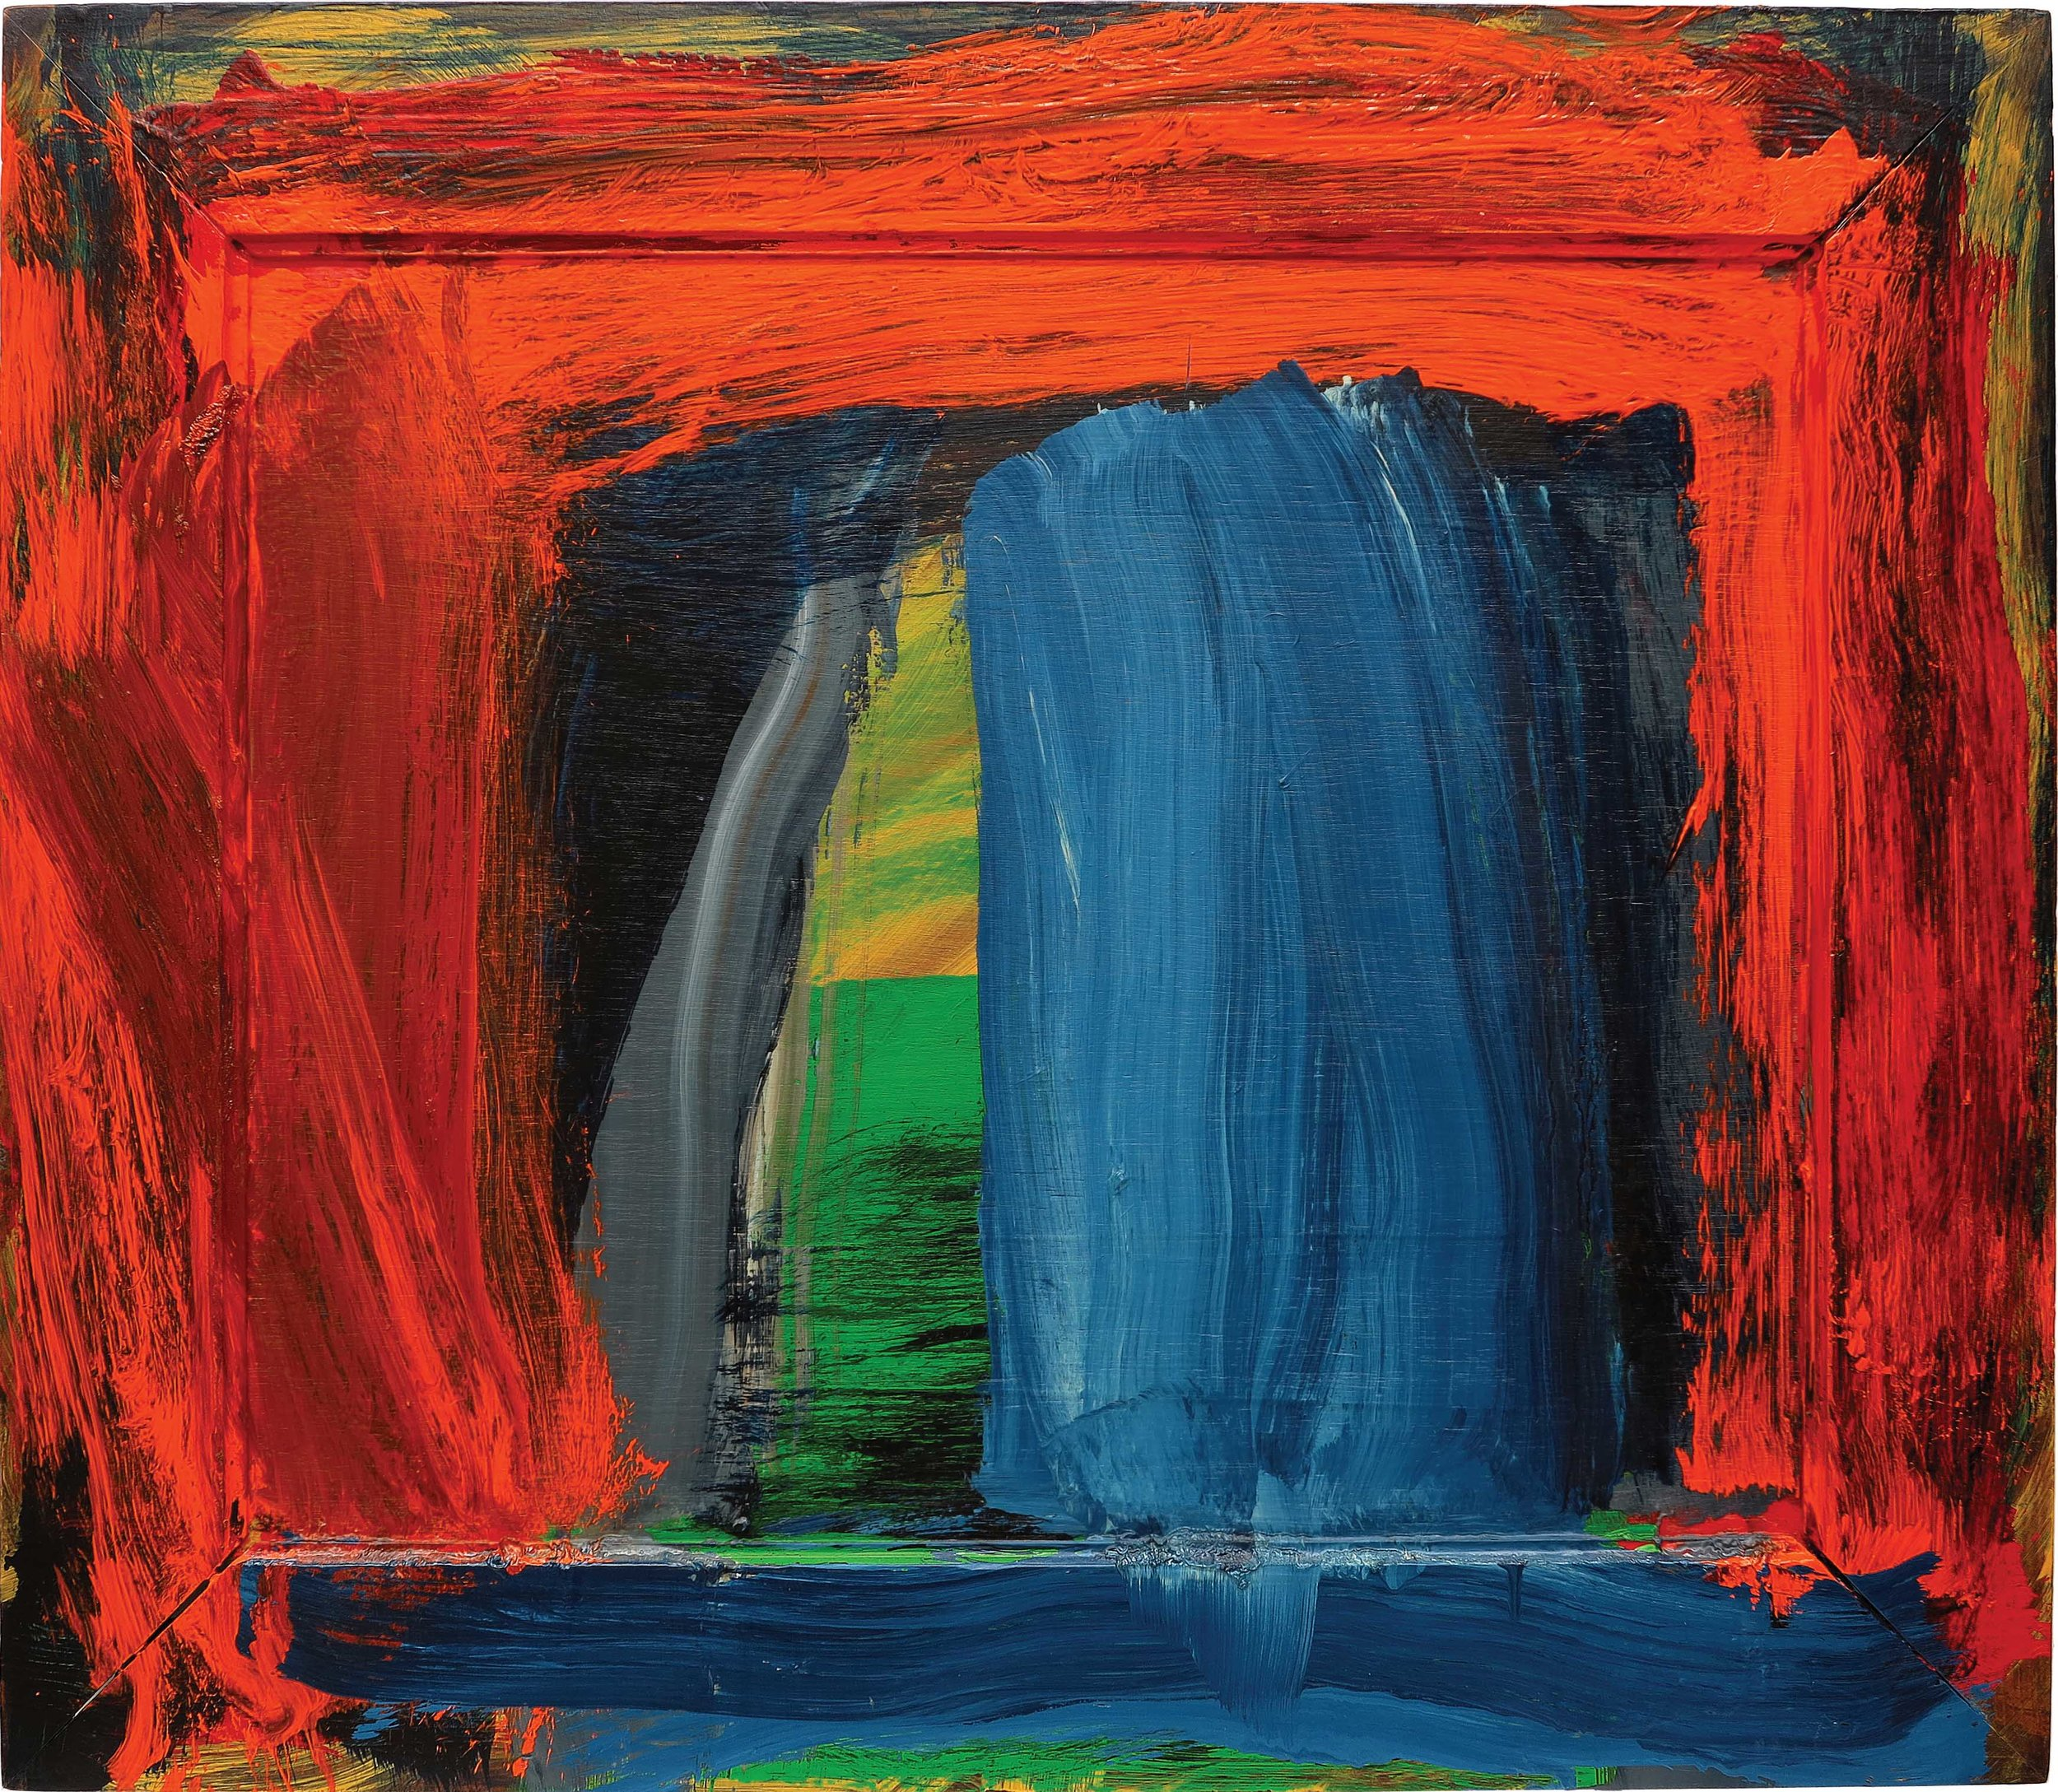 Howard Hodgkin – Navy Blue, 27 x 31 inches, 2002-04, oil on wood